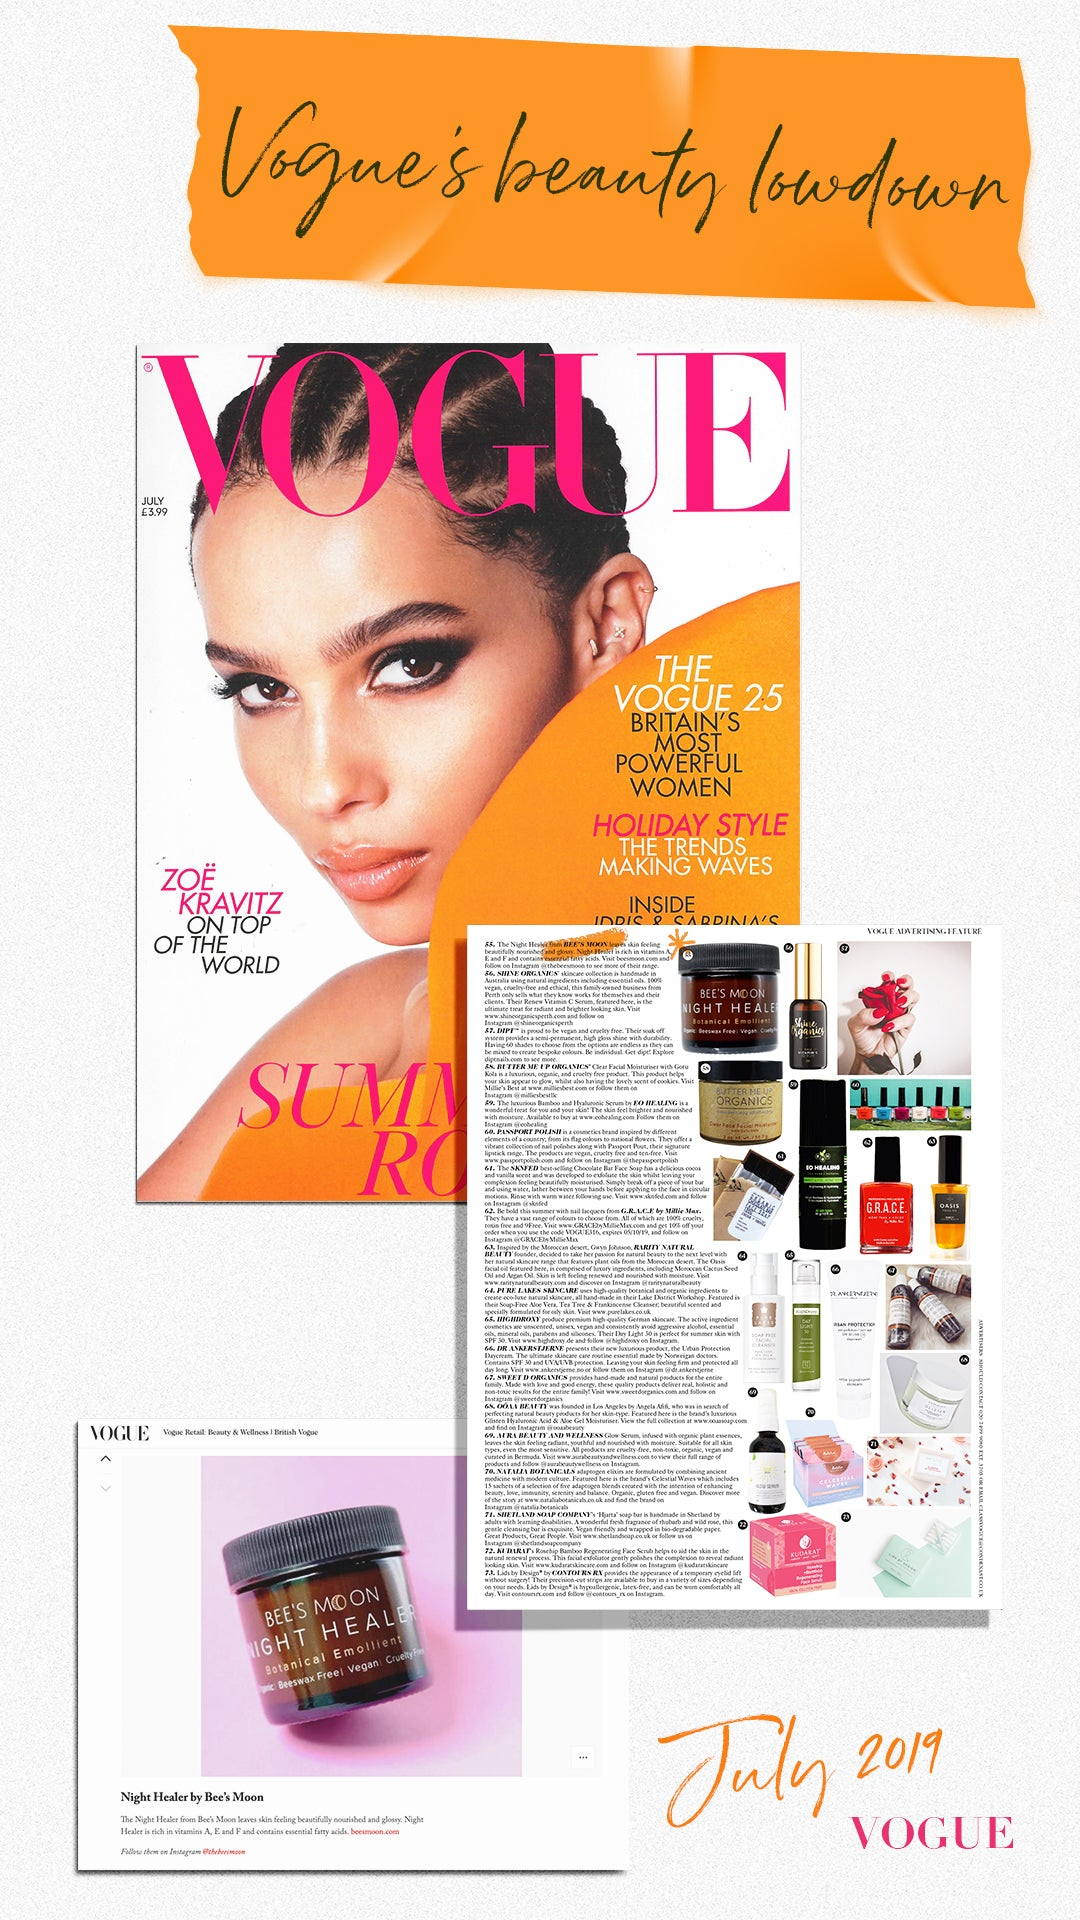 VOGUE and Bee's Moon July 2019 Issue with Zoe Kravitz